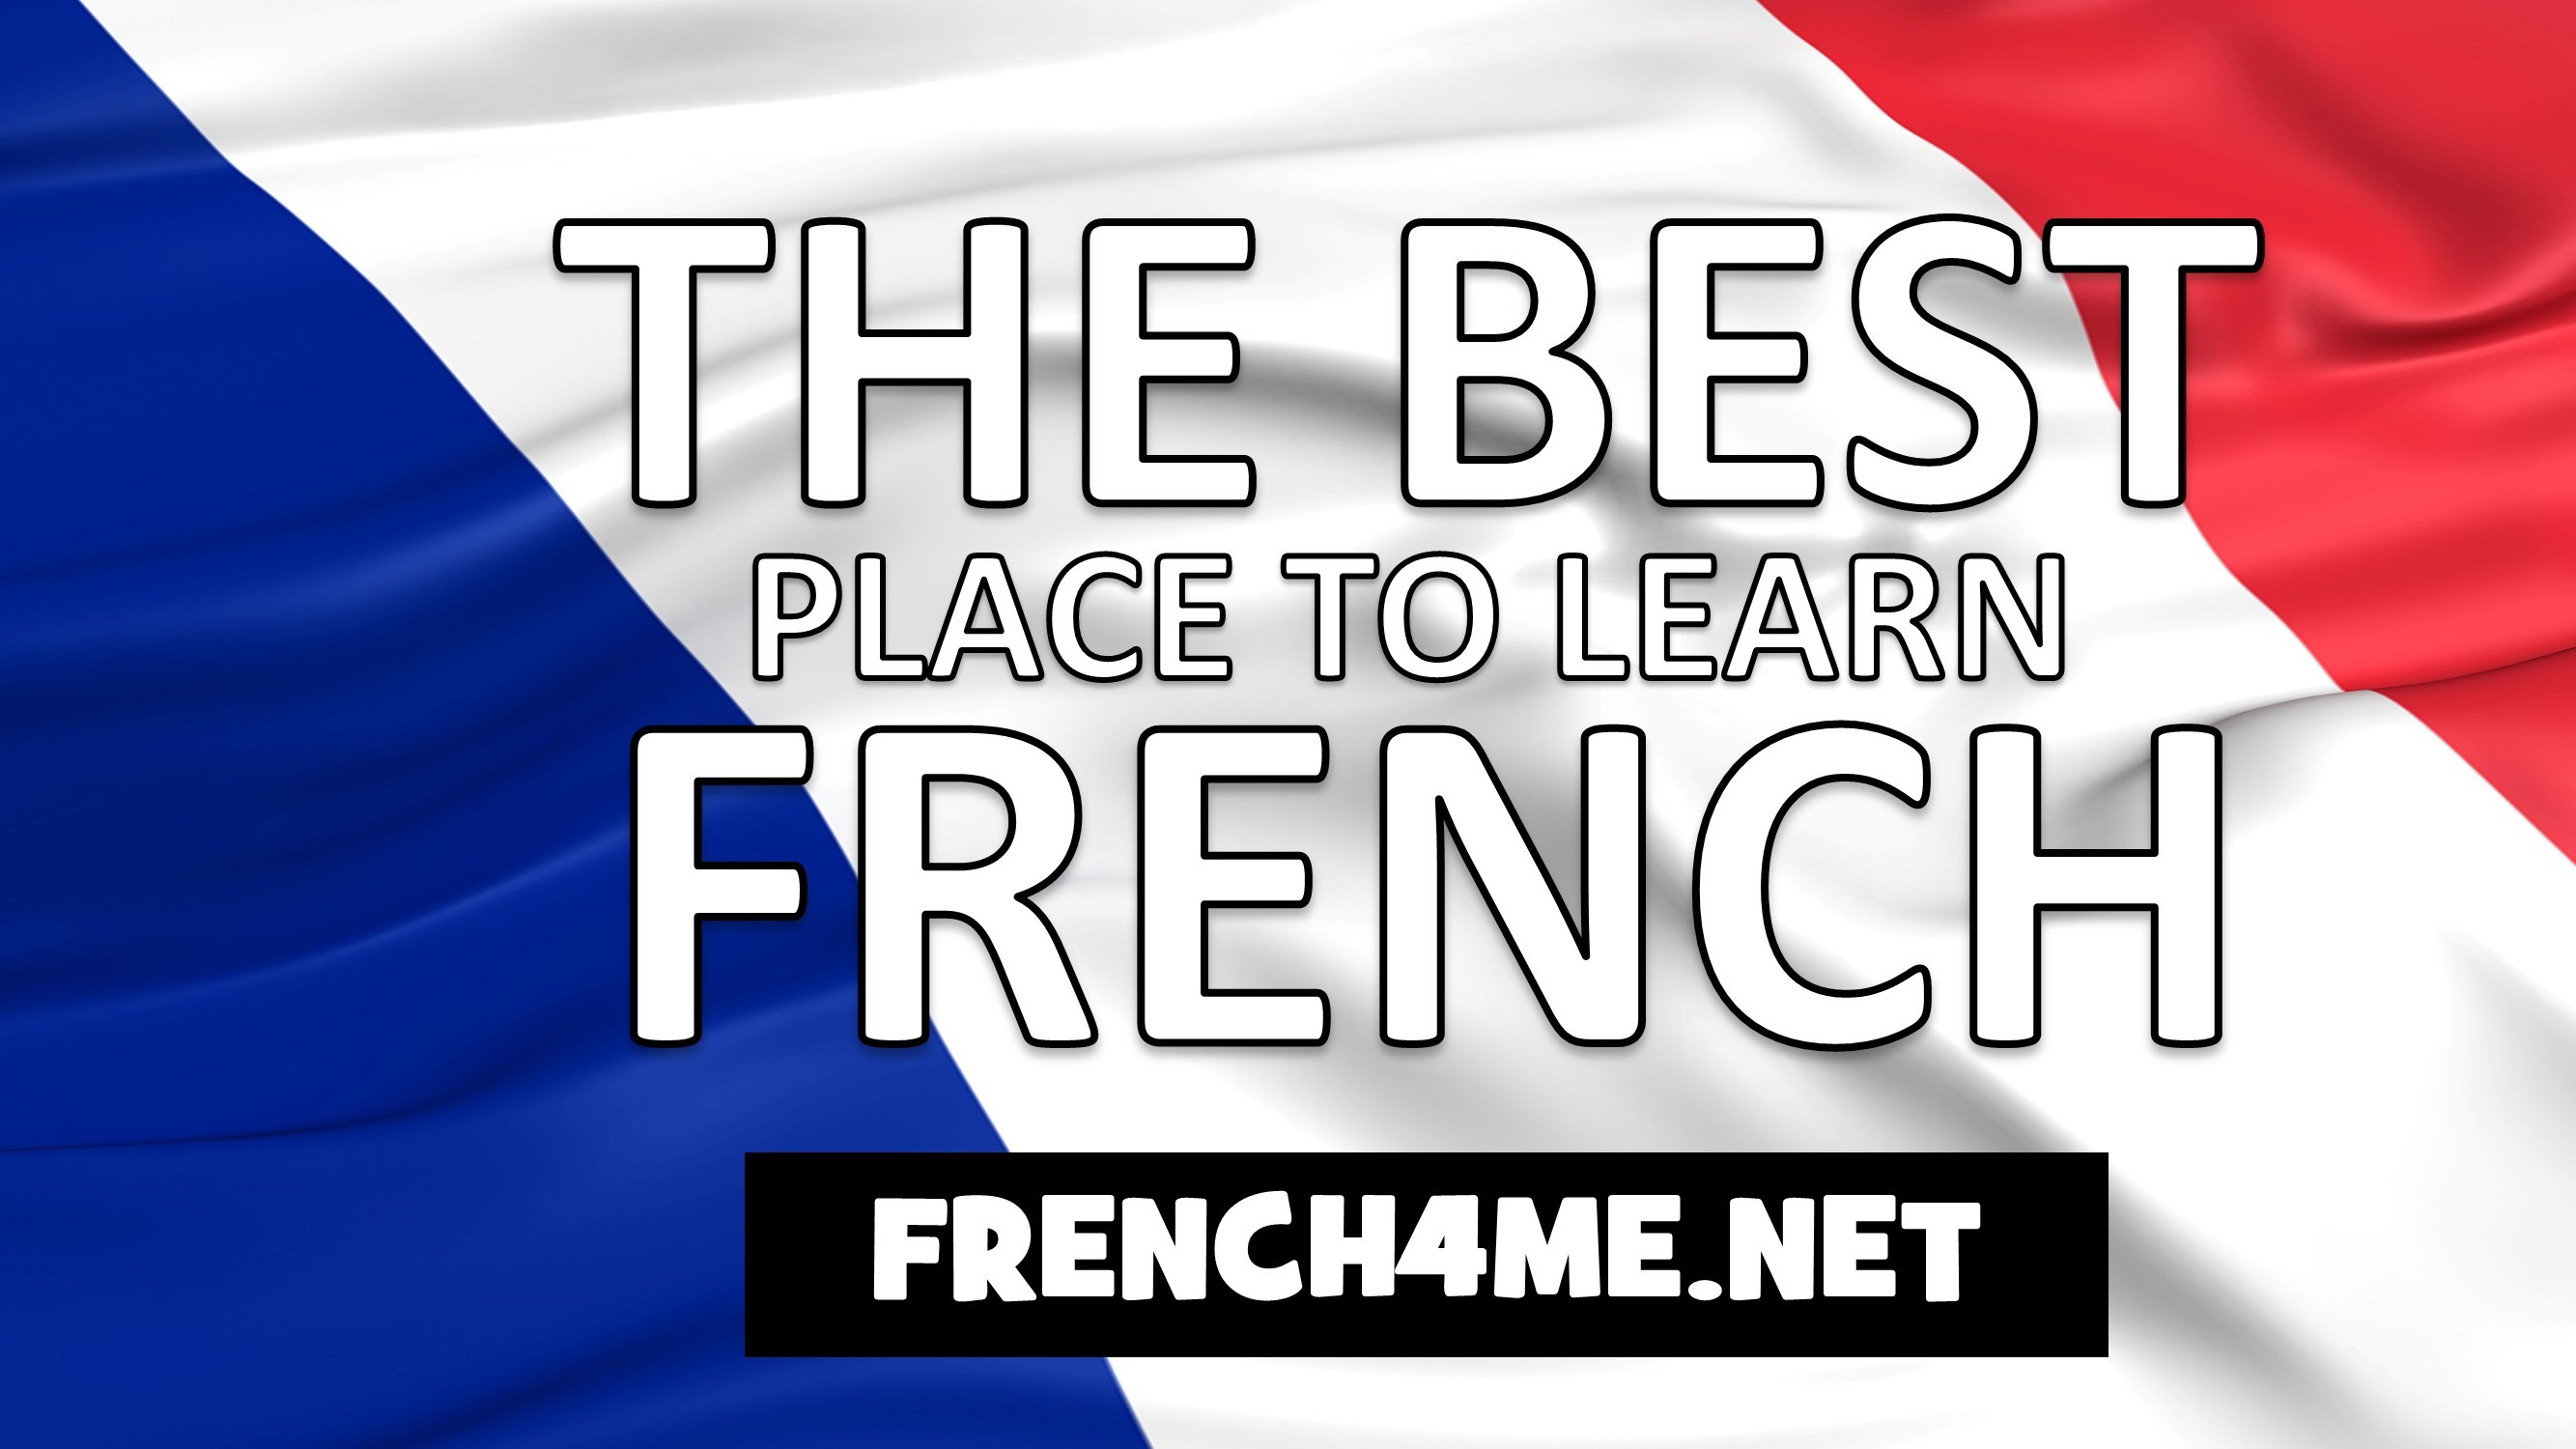 Learn french with pdf french4me the coupon code you entered is expired or invalid but the course is still available fandeluxe Gallery